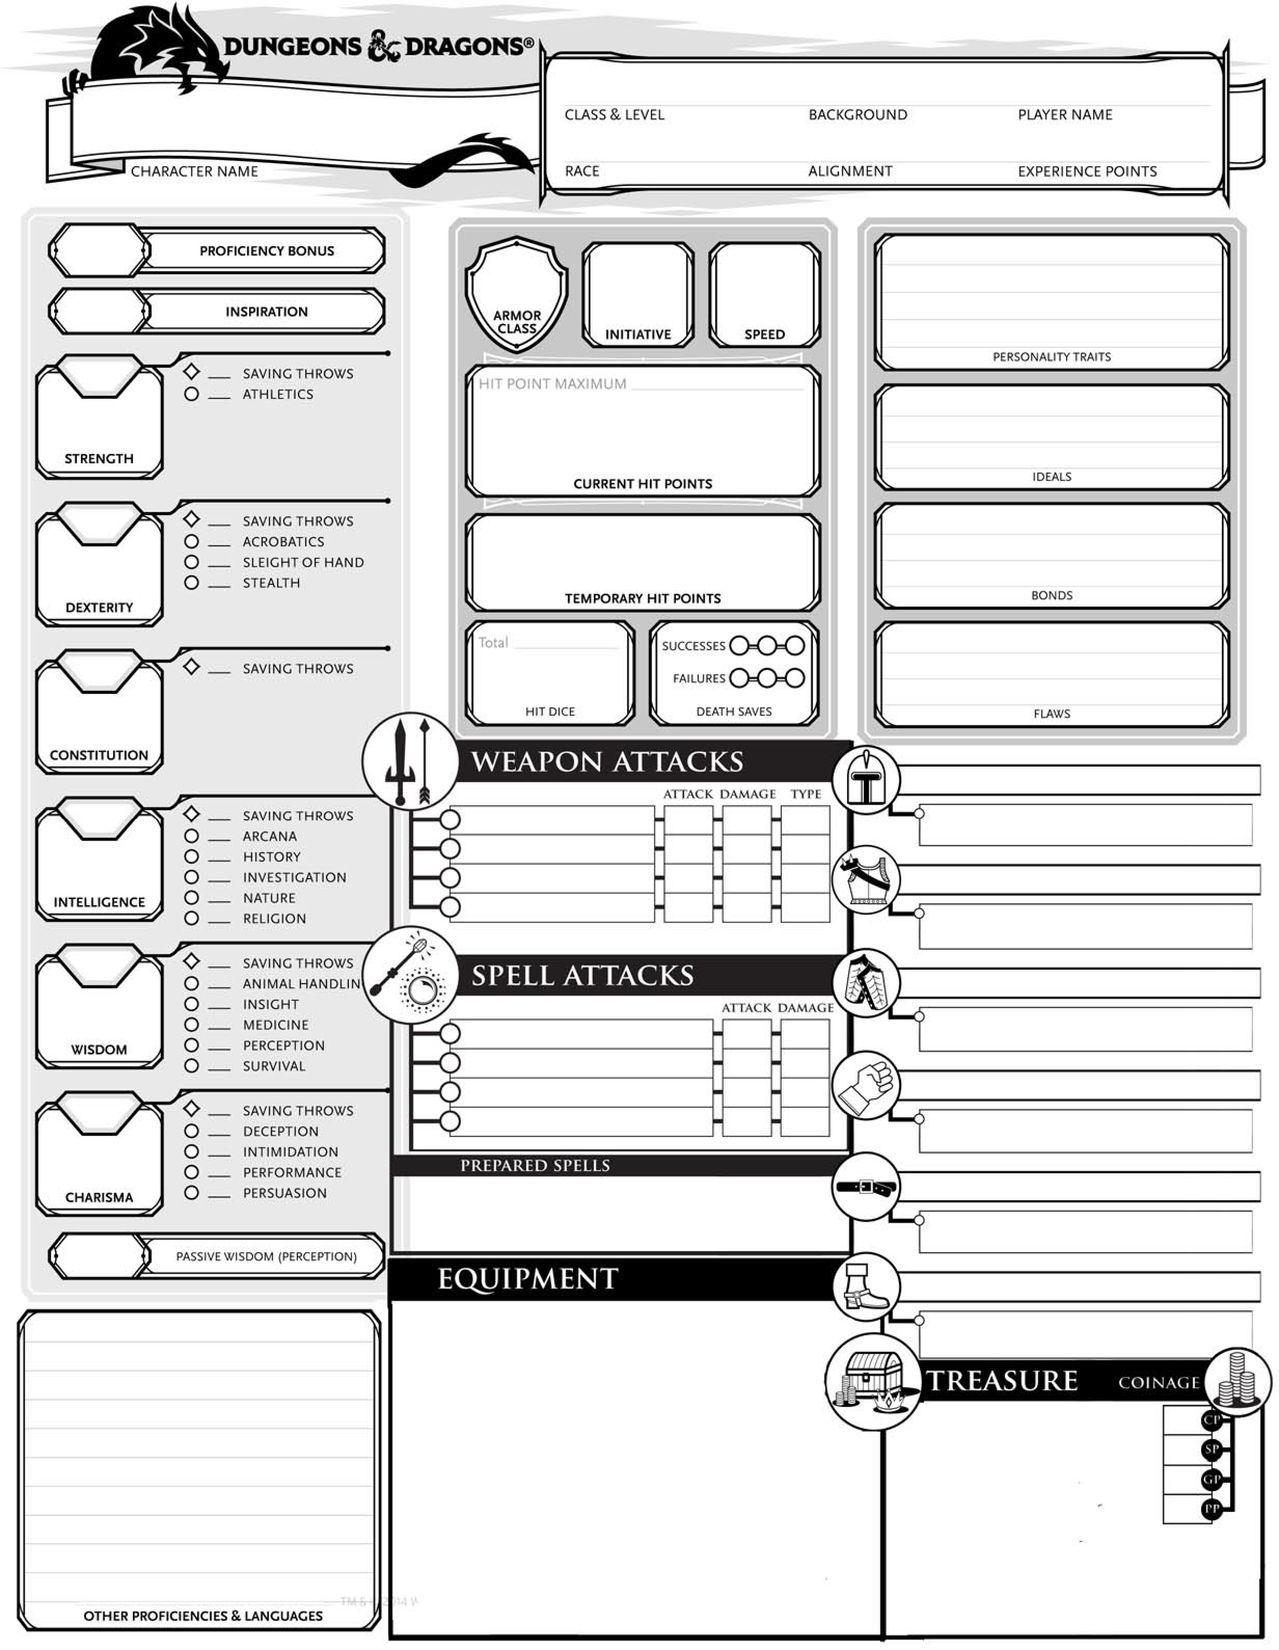 Resource image intended for dungeons and dragons character sheet printable